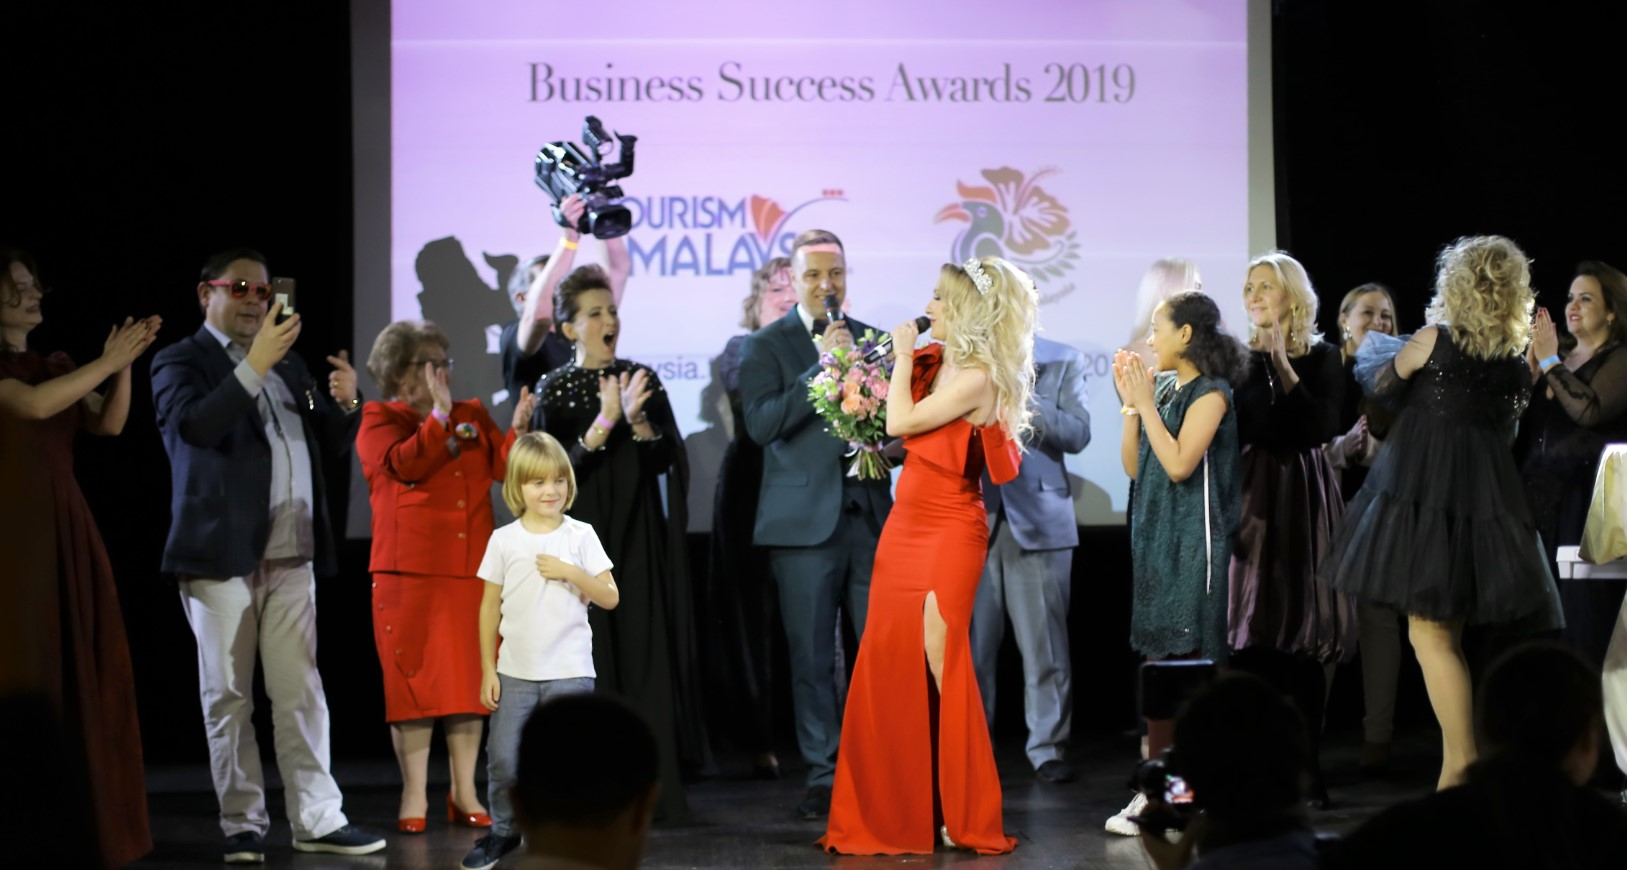 elena-dineeva-nominirovana-na-premii-business-success-awards-2019-10